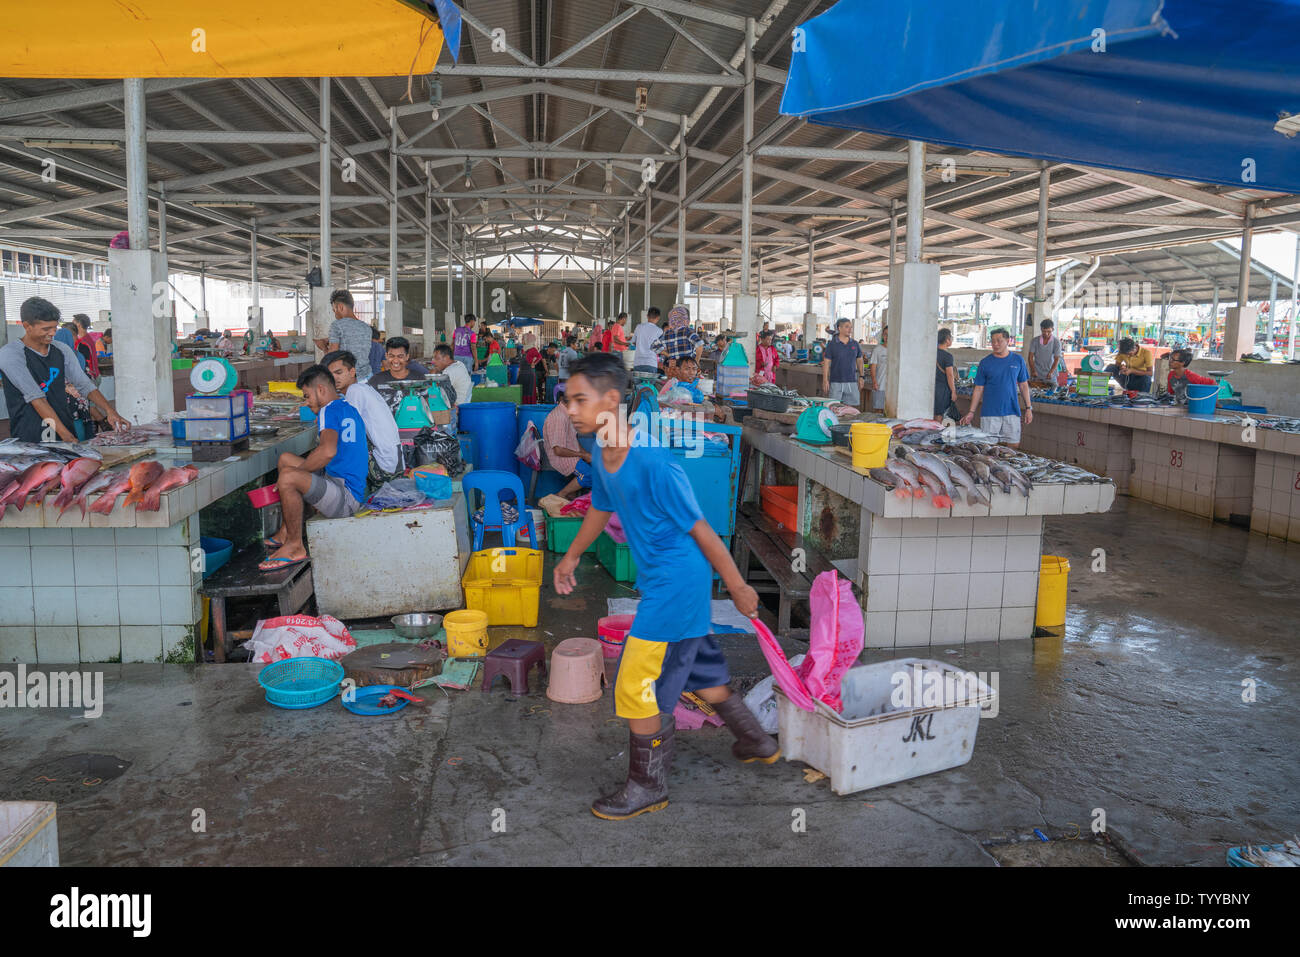 KOTA KINABALU BORNEO - MAY 31 2019; Workers, vendors and fresh seafood in city's wet or fish market near wharf. - Stock Image